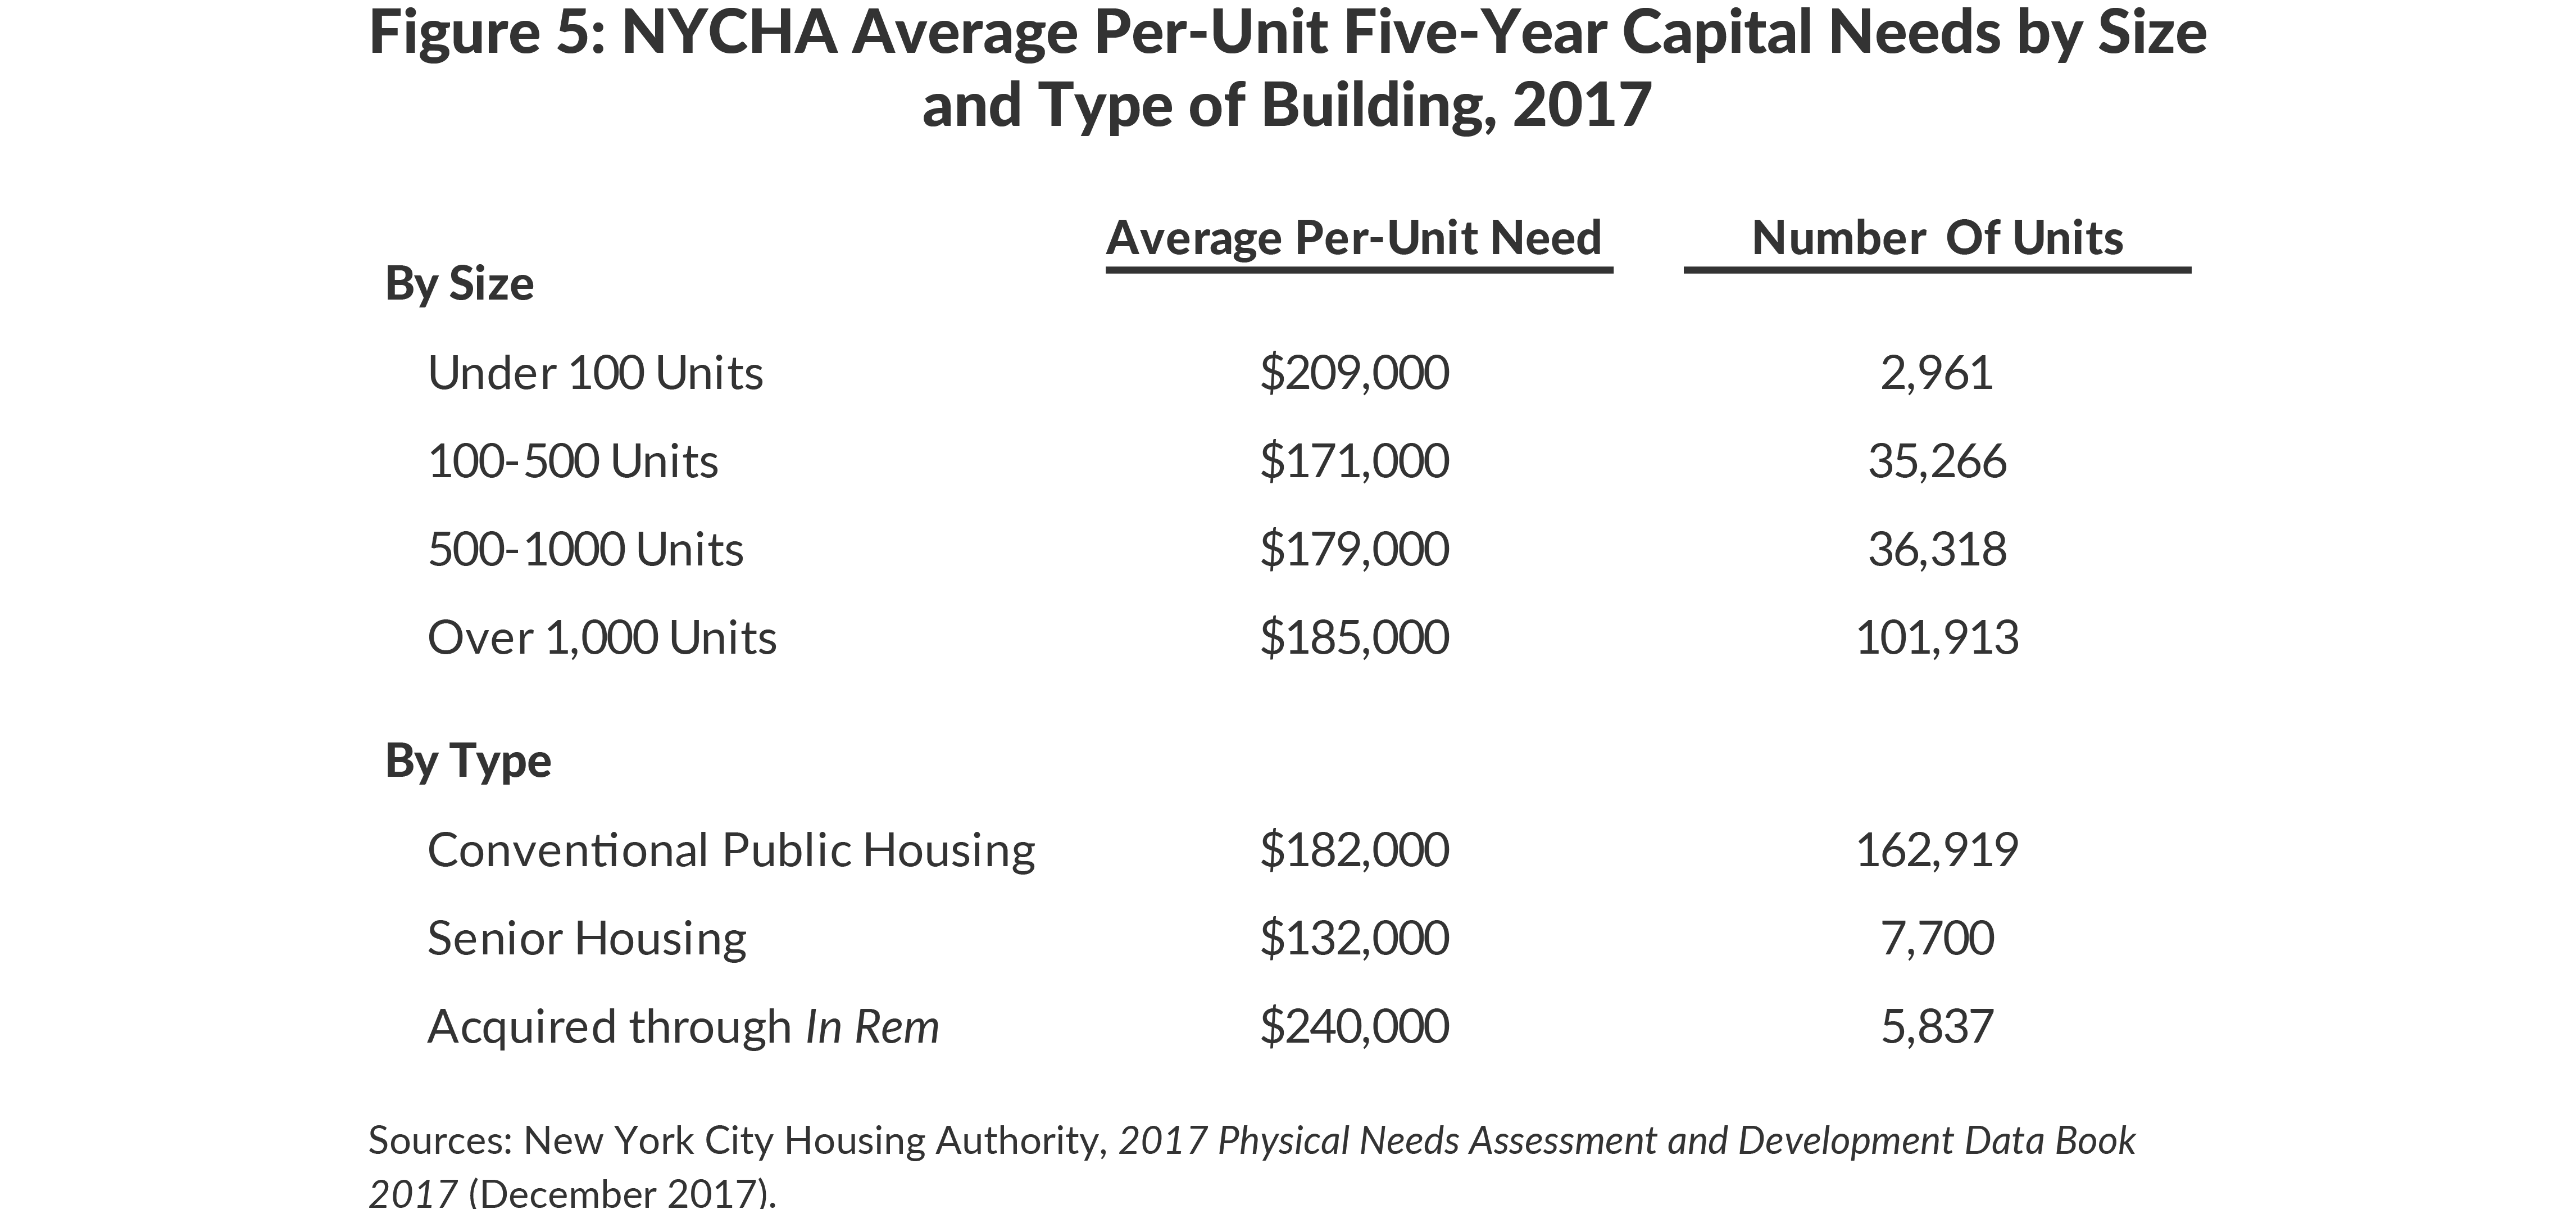 Figure 5: NYCHA Average Per-Unit Five-Year Capital Needs by Sizeand Type of Building, 2017